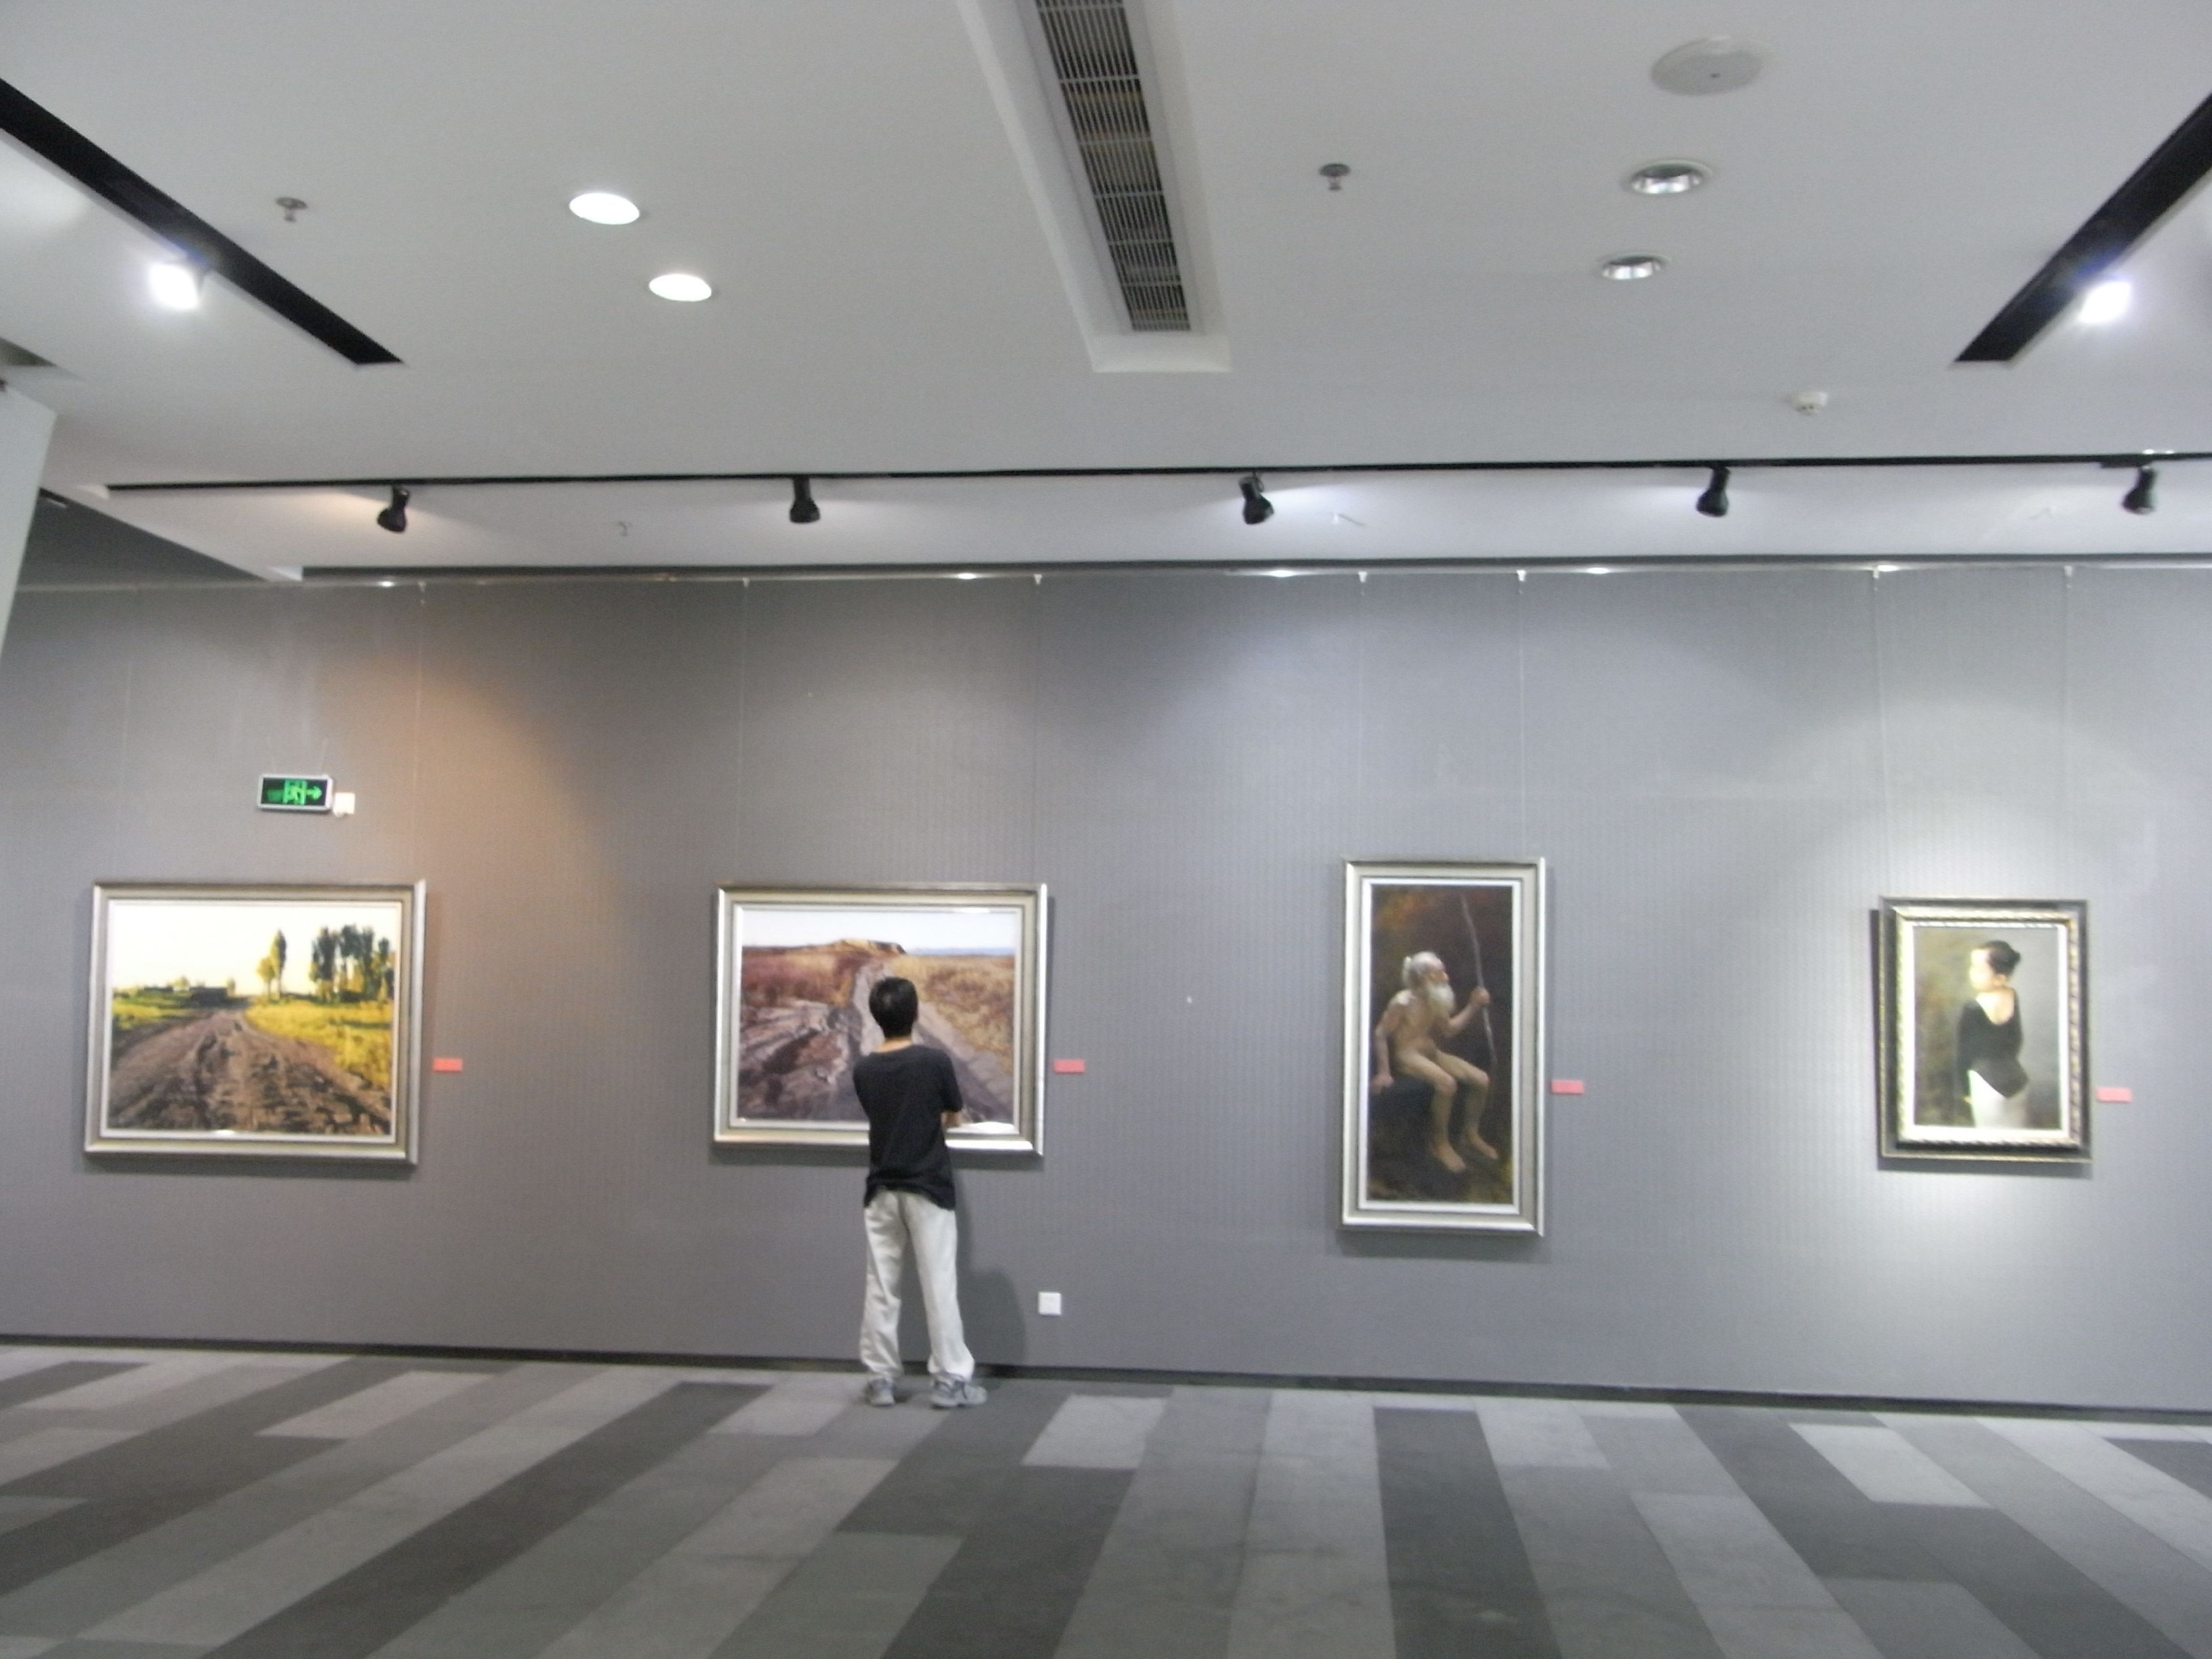 Preserve Your Artwork With Proper Lighting Here S How To Keep Your Masterpieces Looking Their Best For Years To Come Re Light Art Lighting Creative Lighting